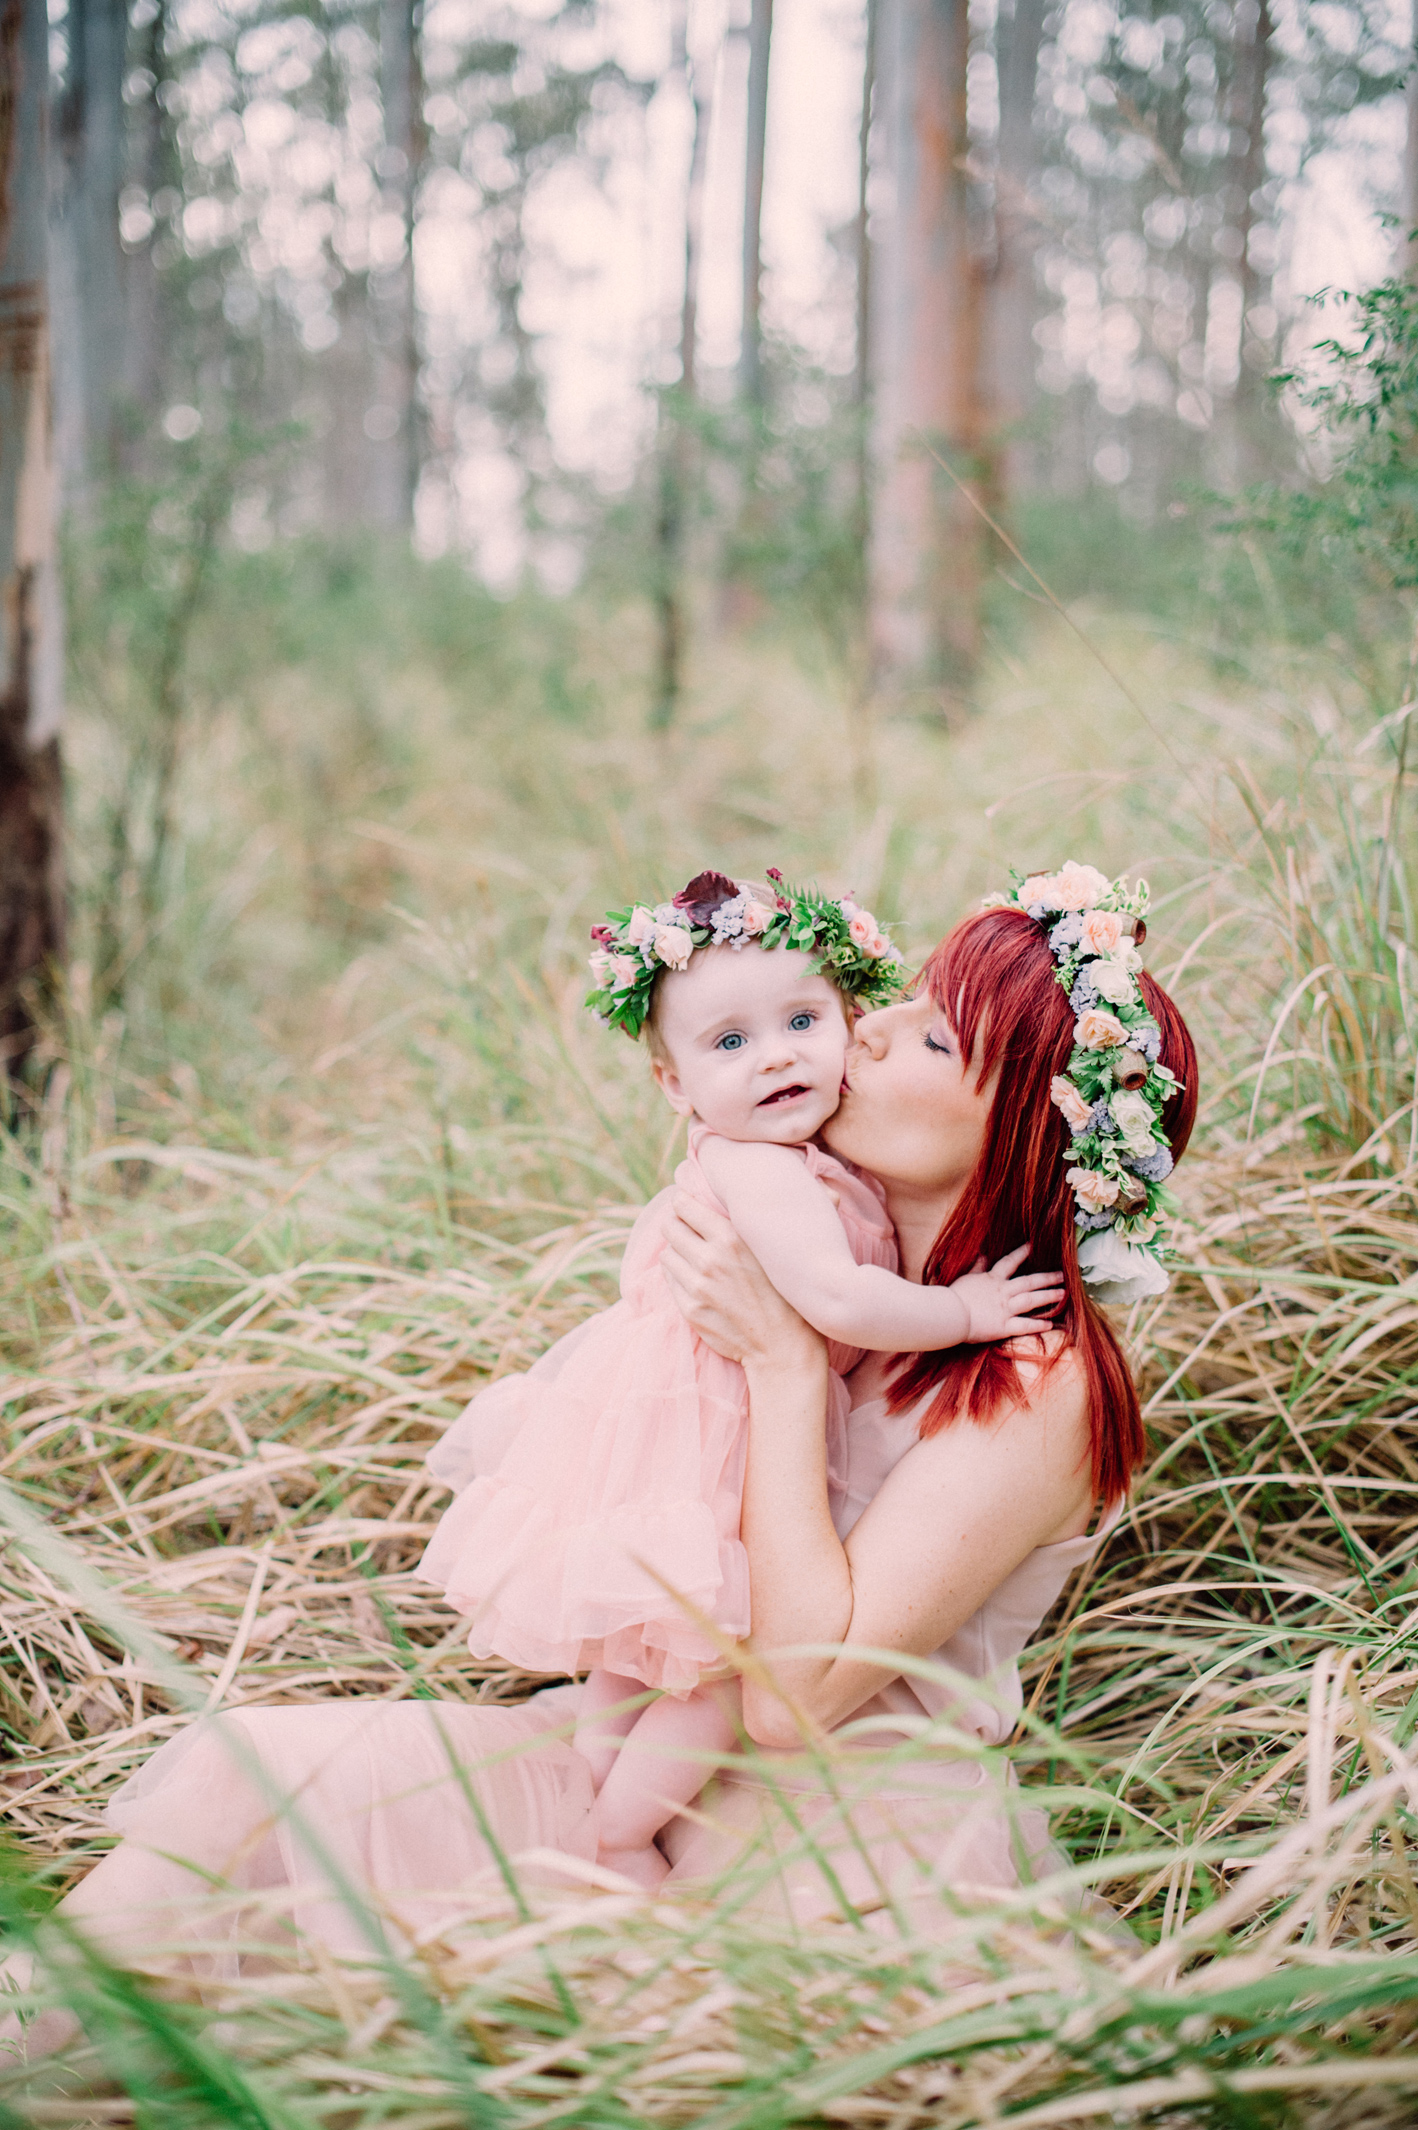 009-family-photos-crown-of-eden-mount-tamborine-sophie-baker-photography